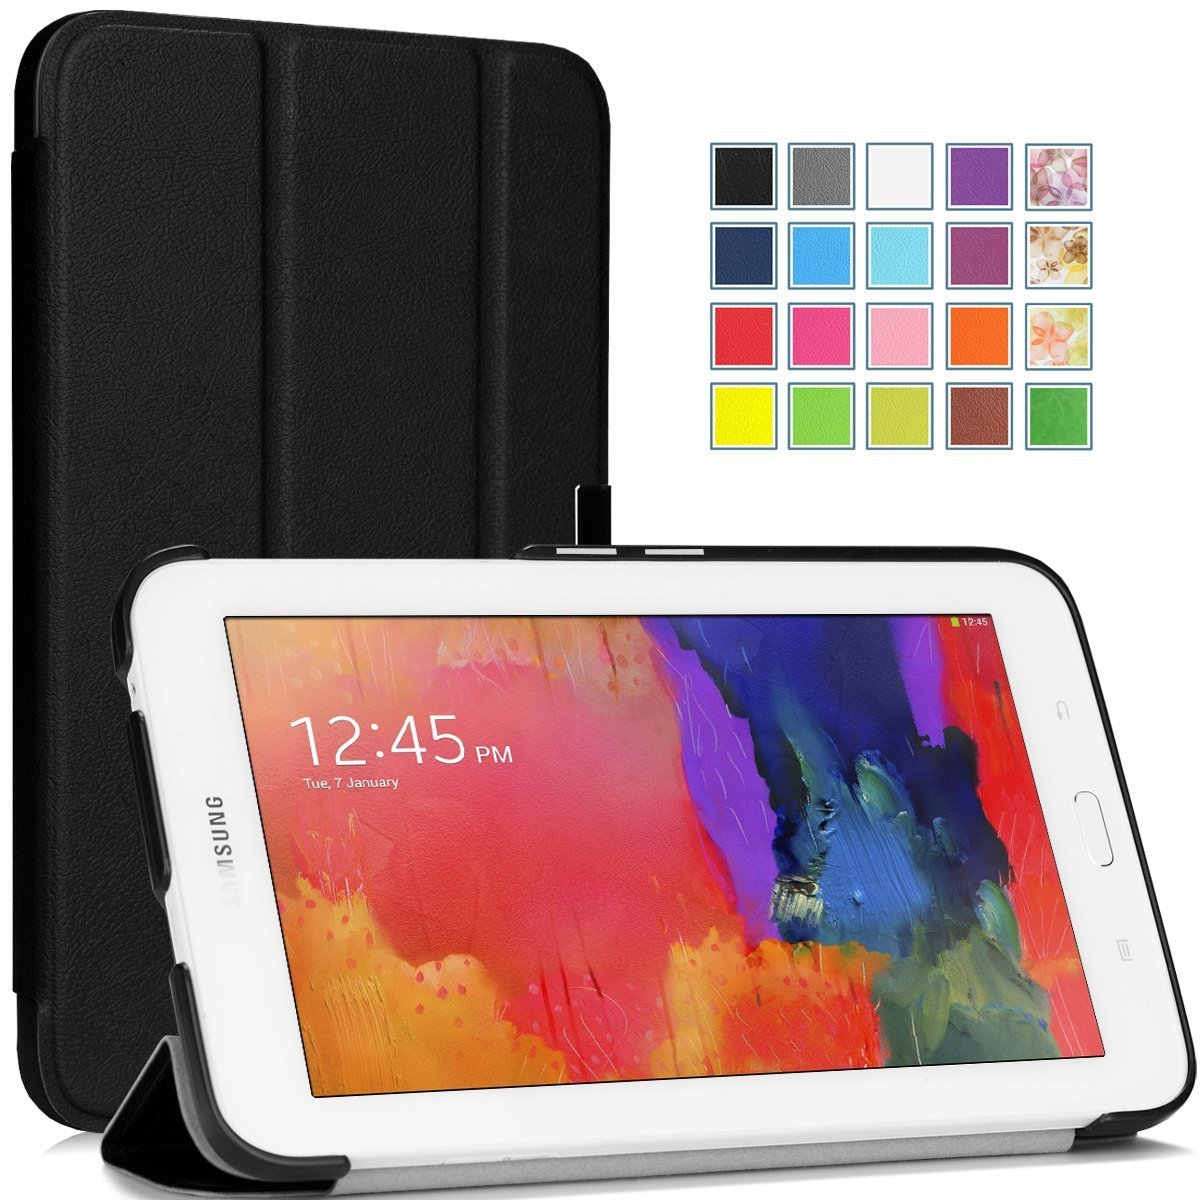 Fintie Samsung Galaxy Tab E Lite 70 Case Slim Fit Folio Stand T111 3 White Tisuns Ultra Lightweight Cover For